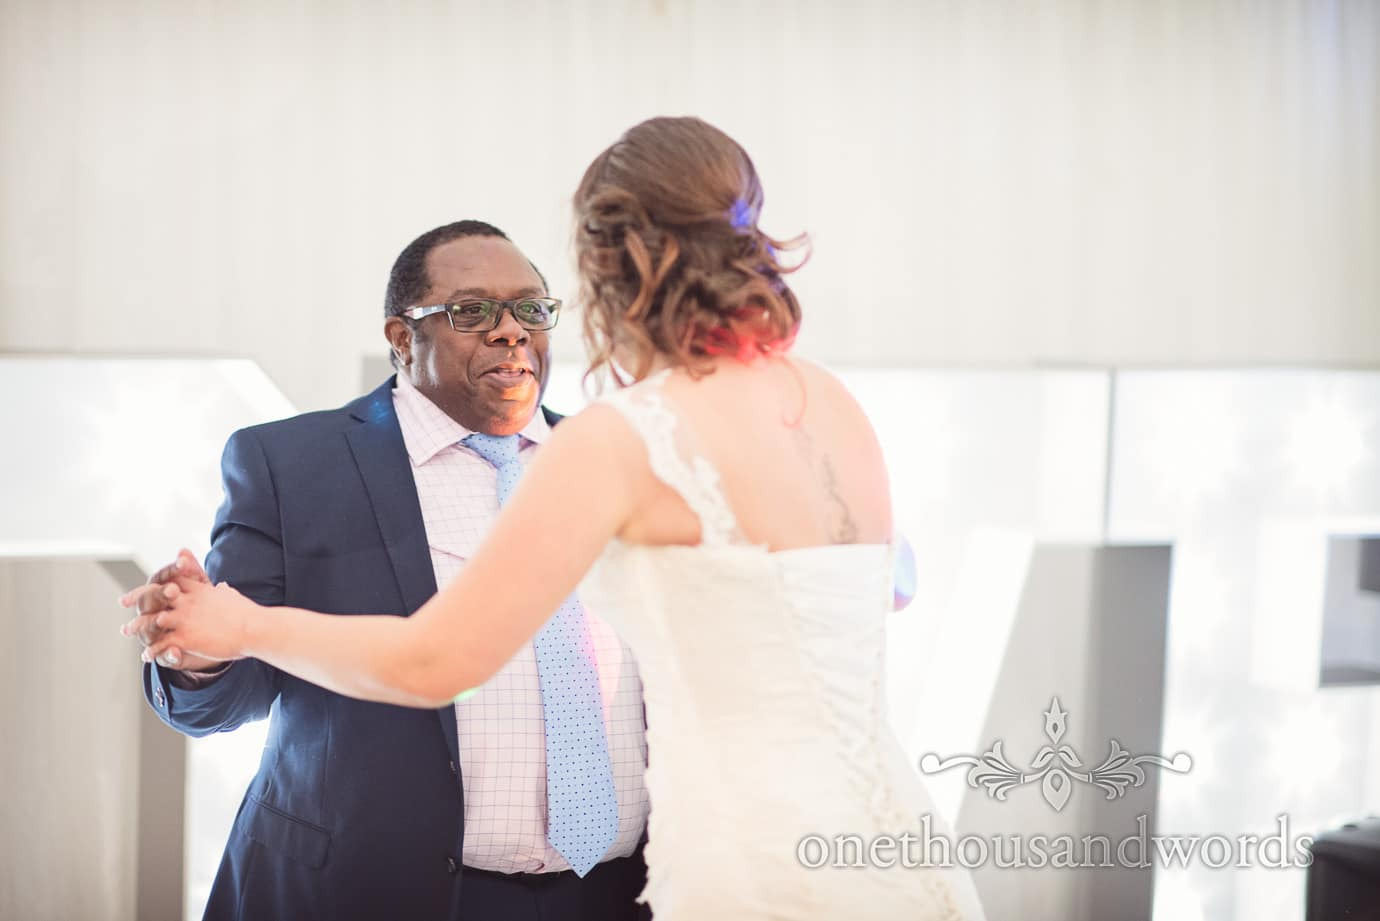 Wedding guest dances with bride against love letters at The Old Vicarage Wedding venue